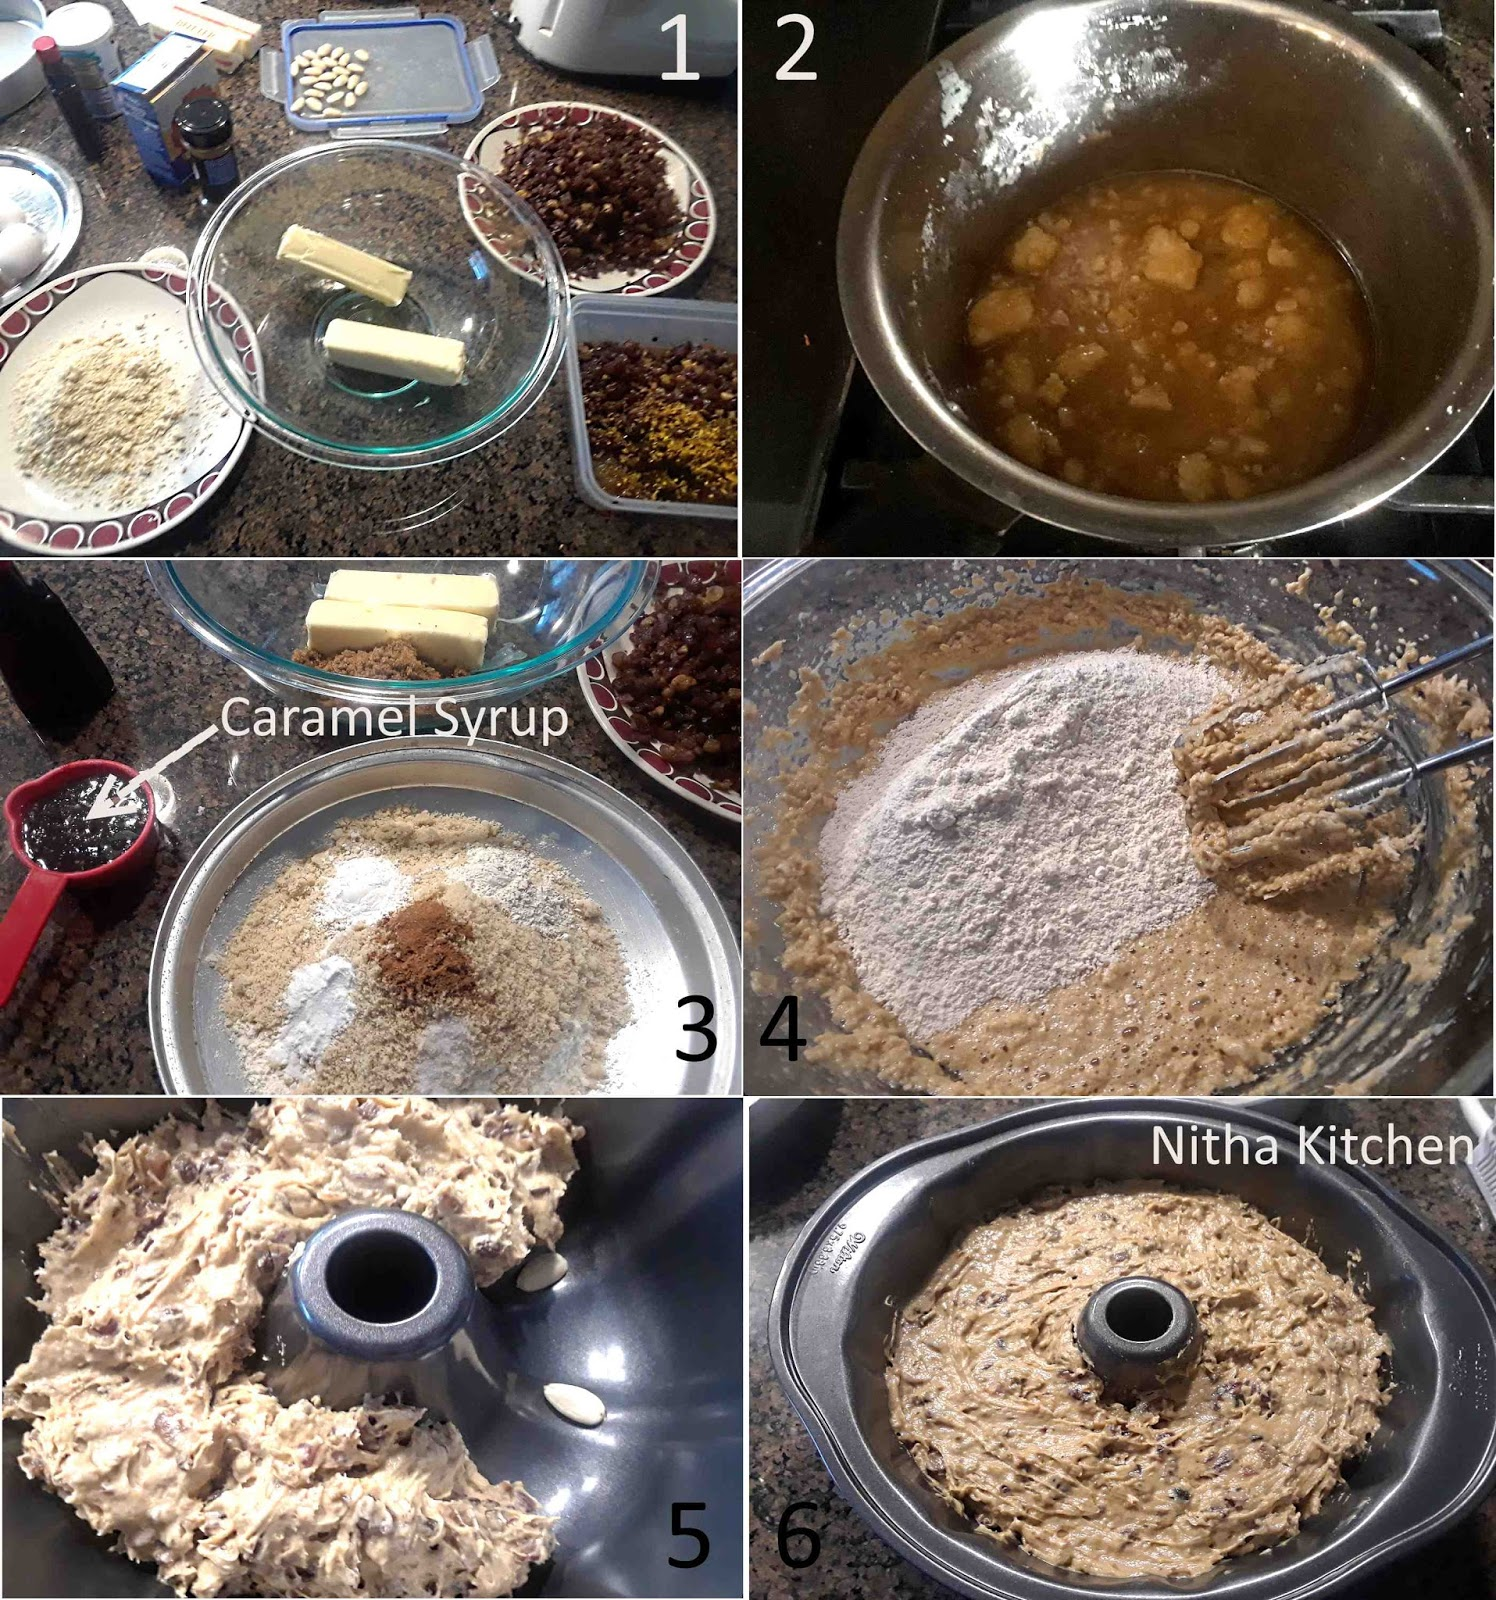 Ingredients Needed To Bake A Cake From Scratch